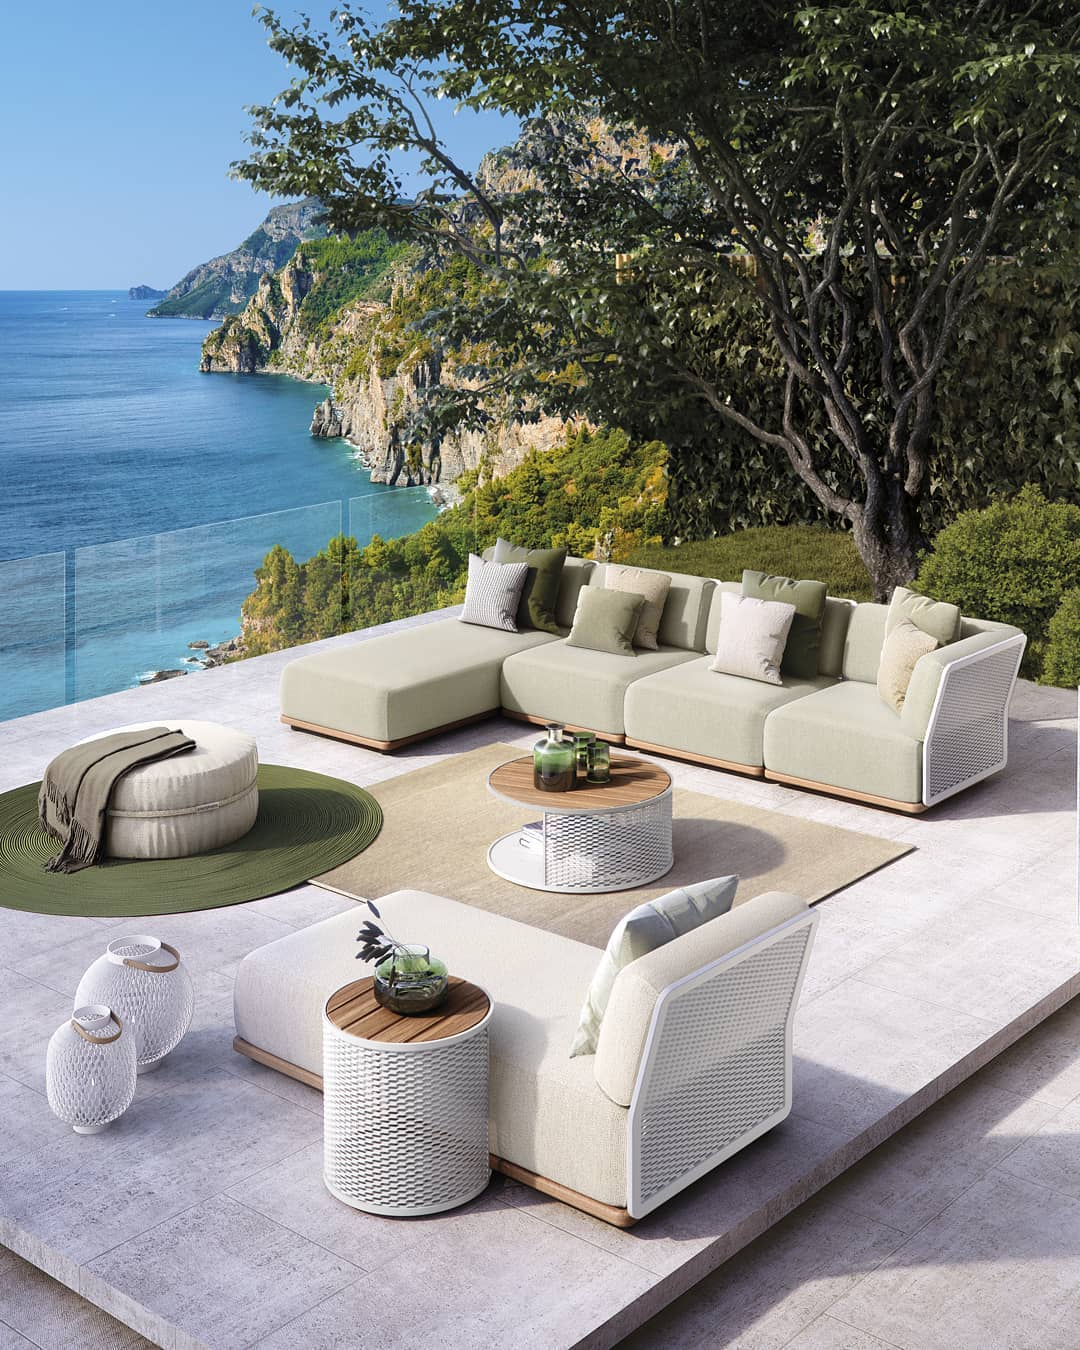 Outdoor Furniture in Dubai